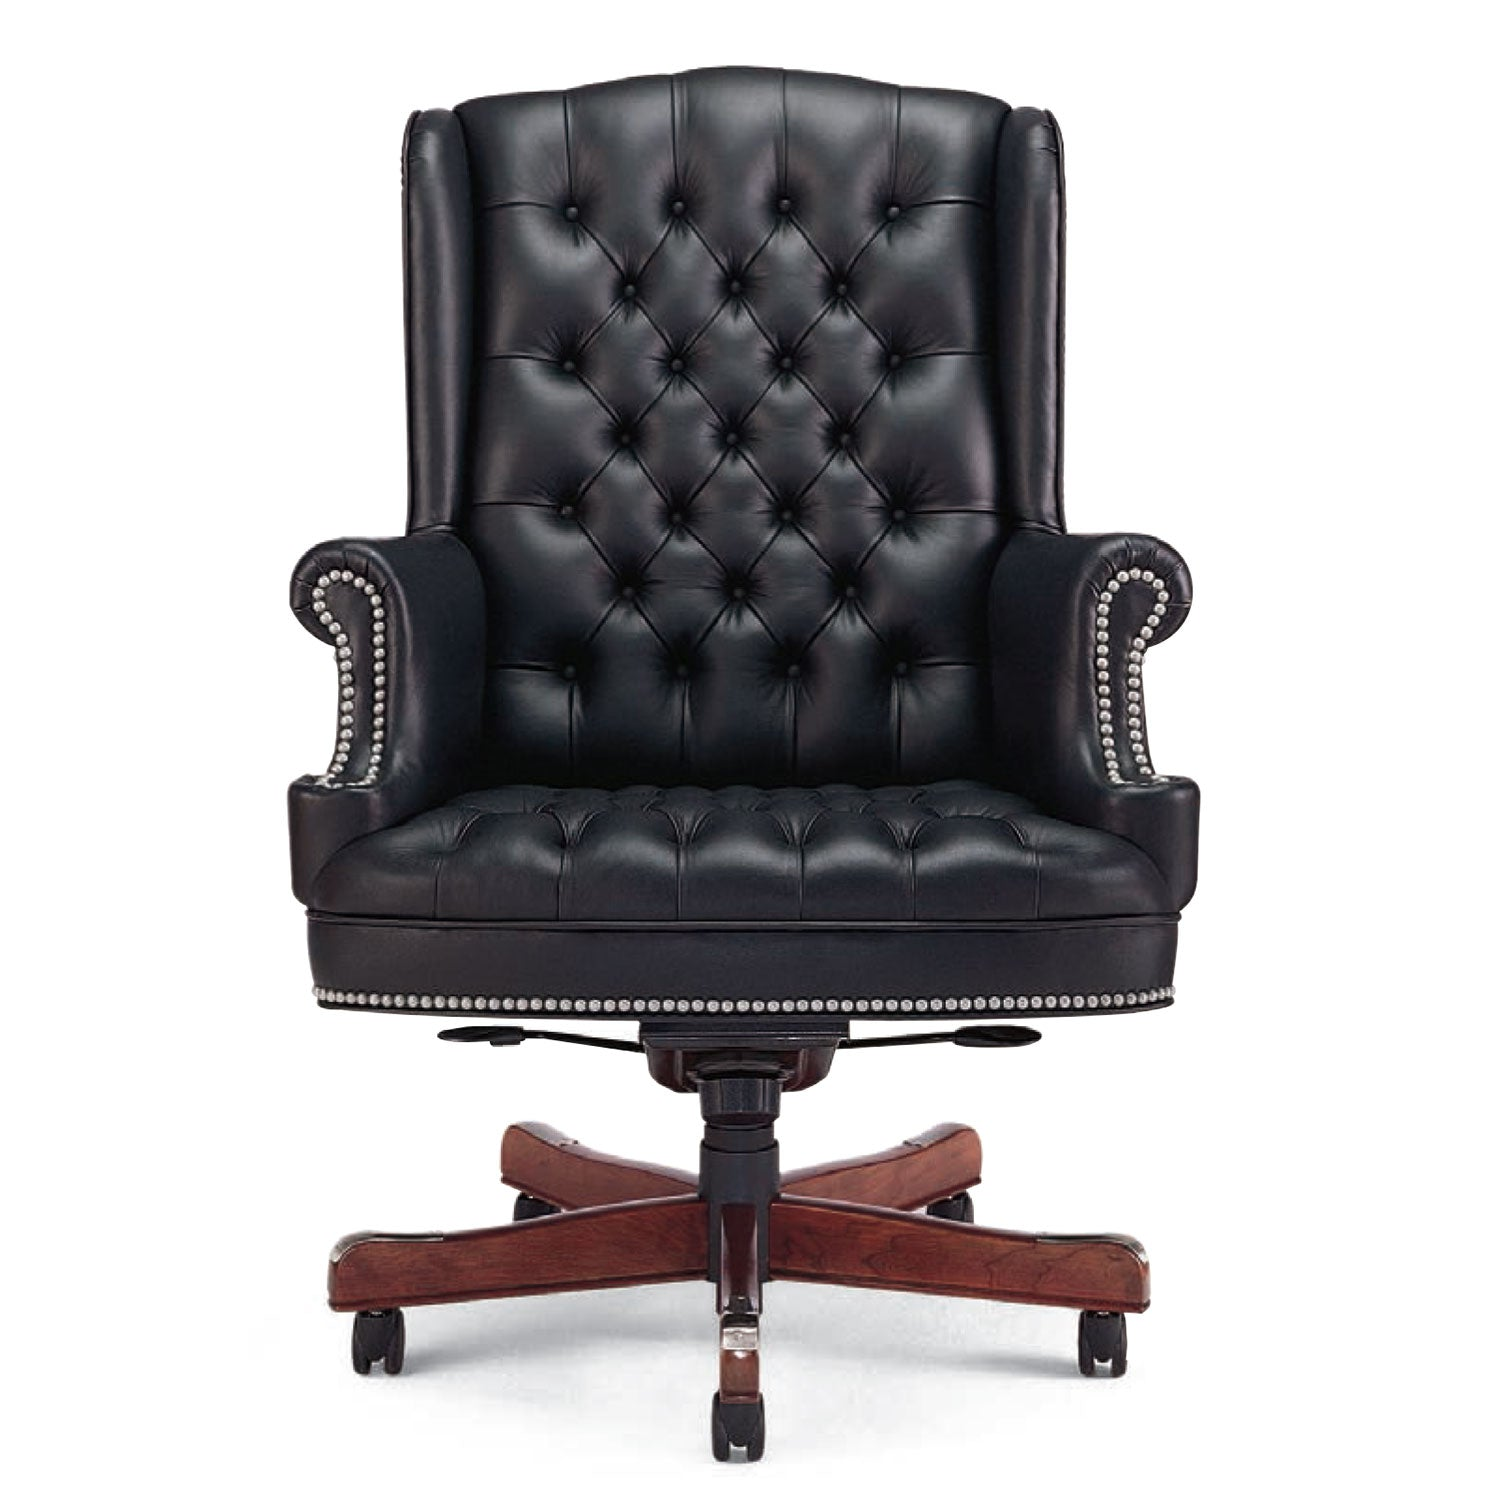 William Jefferson Clinton Oval Office Chair History Company